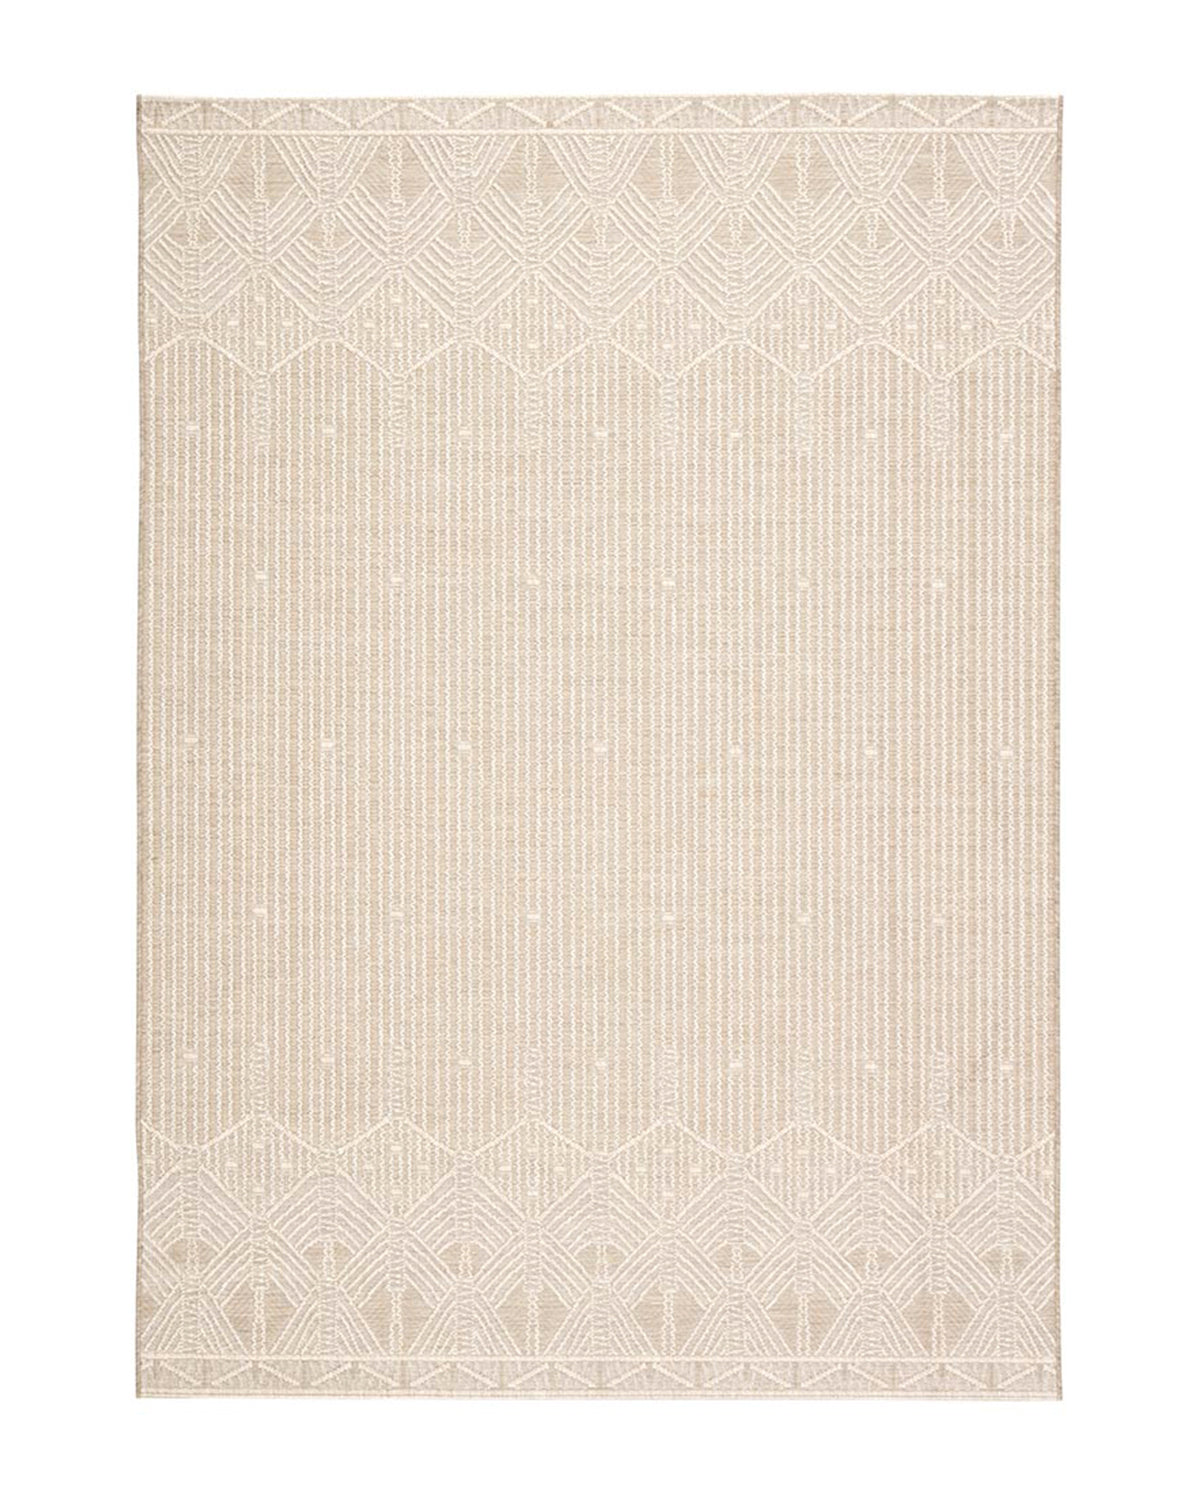 Sarasota Indoor / Outdoor Rug